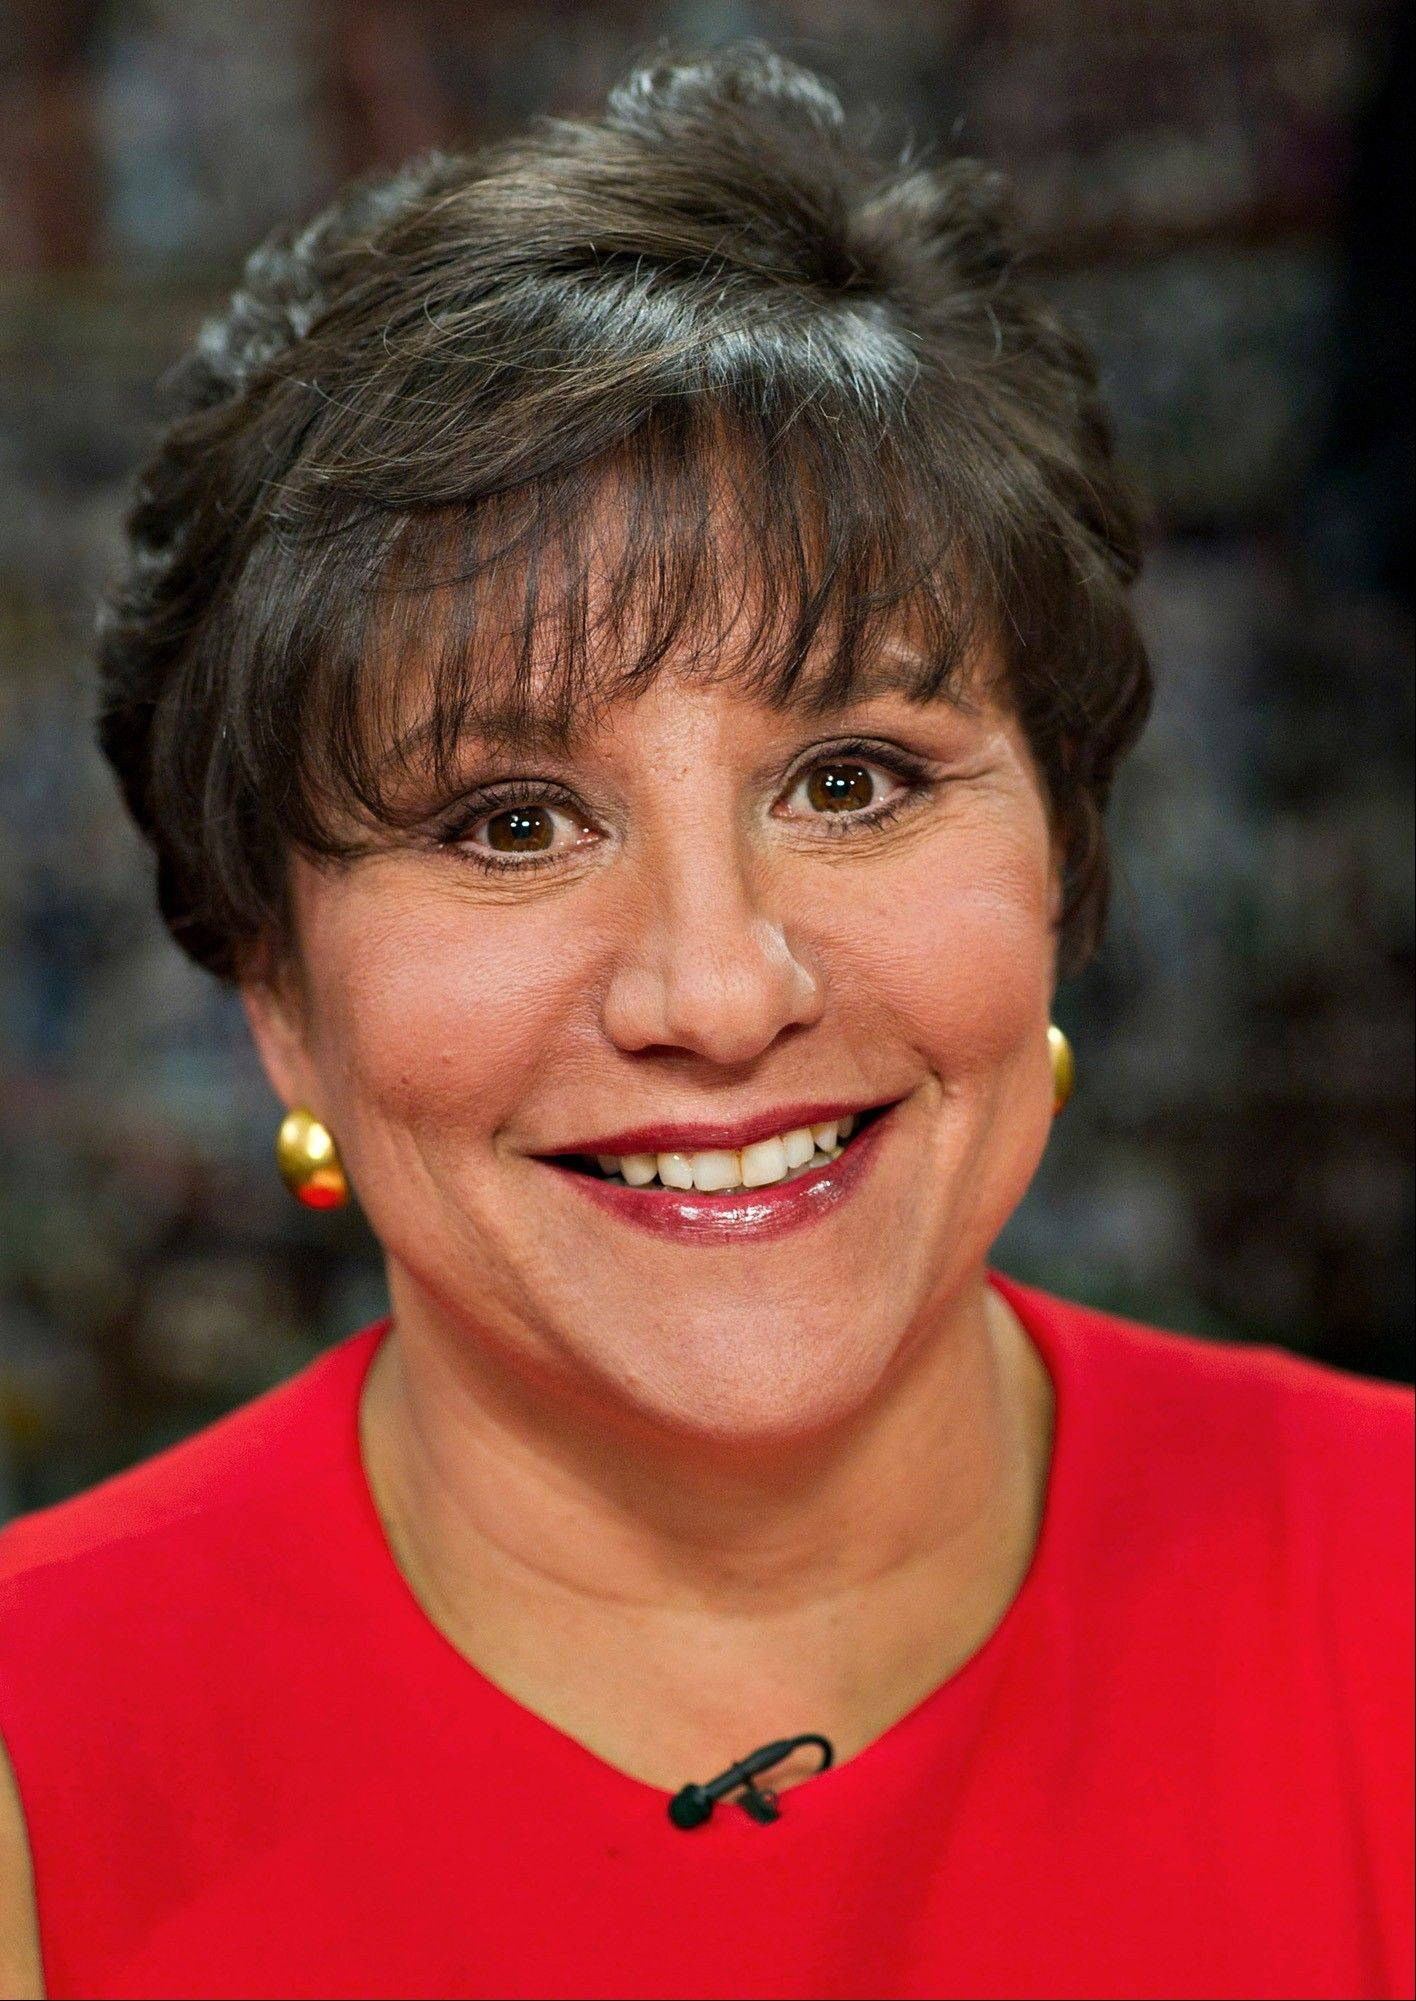 Chicago billionaire Penny Pritzker, whose fundraising prowess fueled President Barack Obama�s ascent, will confront Republicans� questions about a bank she led and offshore trusts that benefit her during a hearing on her nomination to be U.S. Commerce secretary.